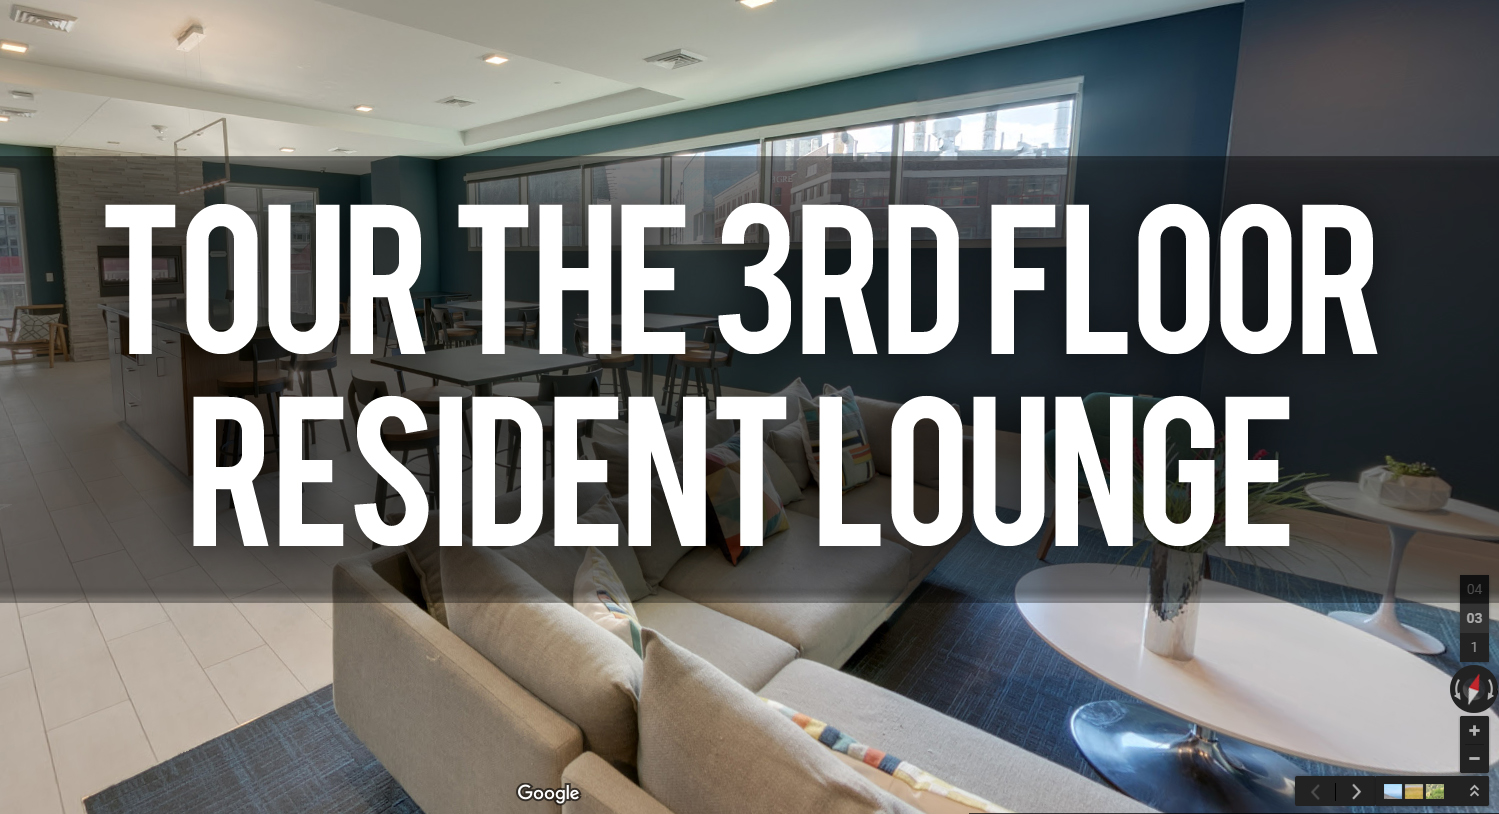 Tour of 3rd floor lounge at Venue Tower Apartments